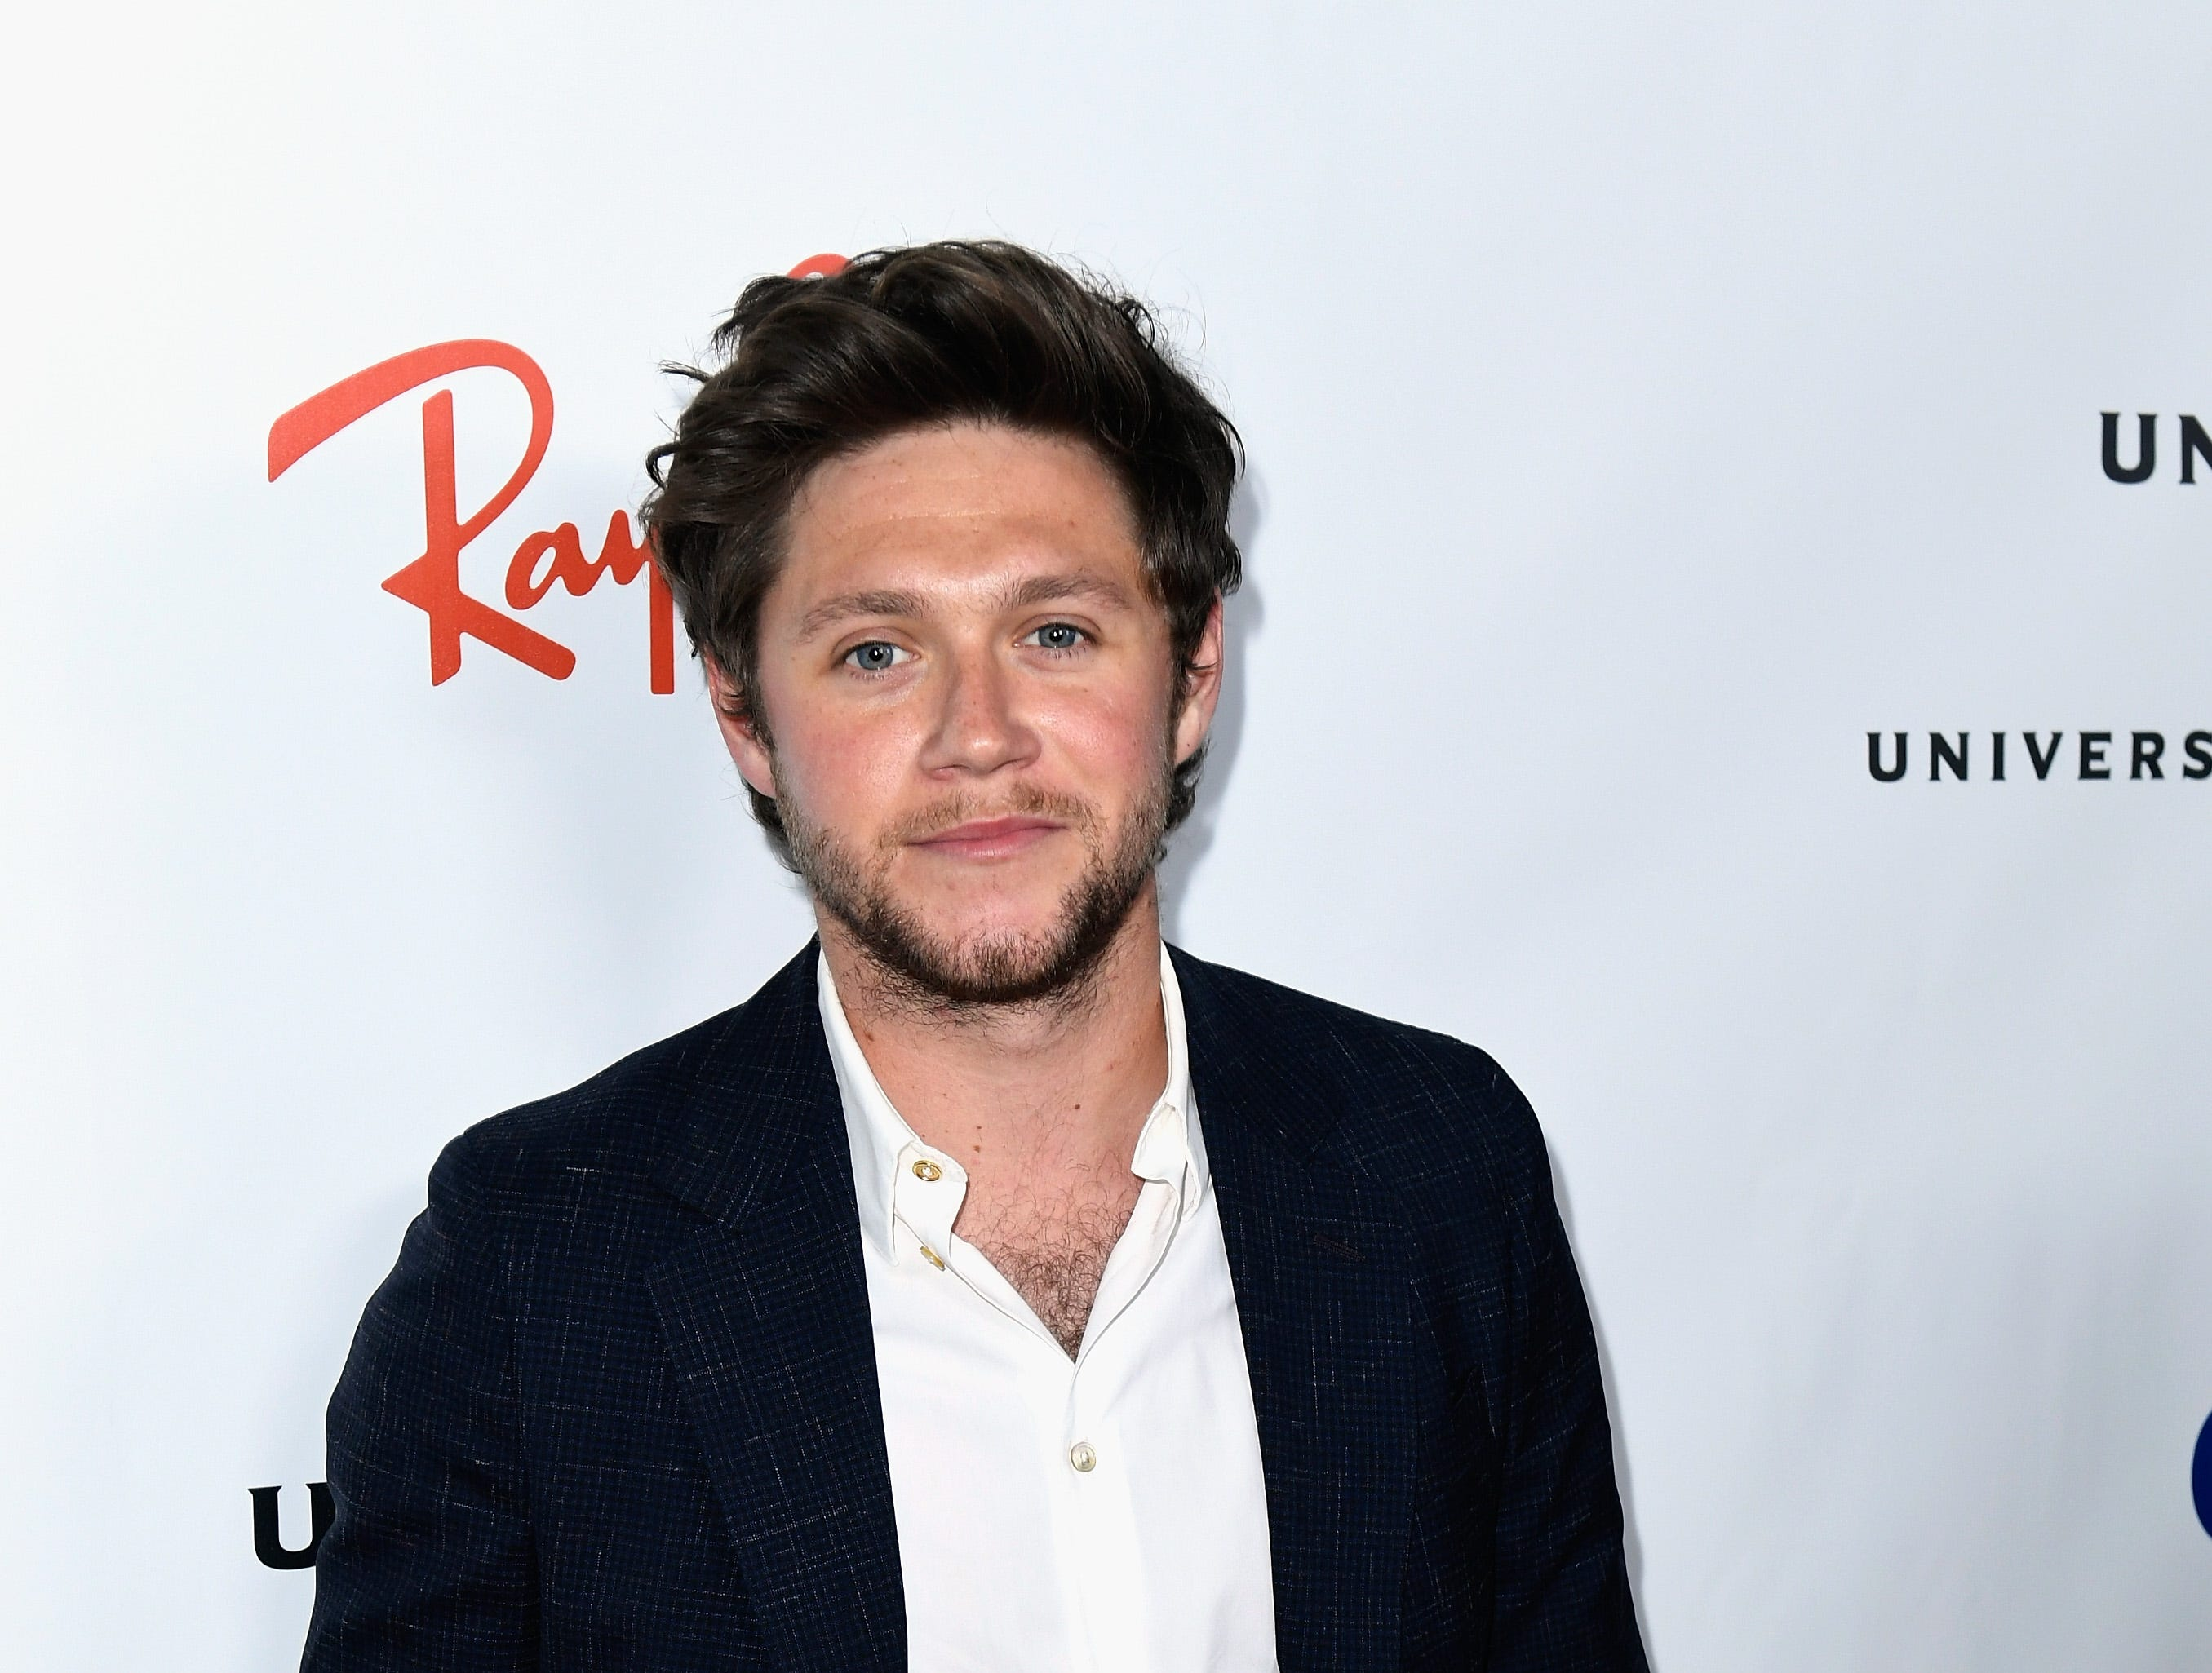 LOS ANGELES, CA - FEBRUARY 10:  Niall Horan attends Universal Music Group's 2019 After Party Presented by Citi Celebrates The 61st Annual Grammy Awards on February 9, 2019 in Los Angeles, California.  (Photo by Timothy Norris/Getty Images for for Universal Music Group ) ORG XMIT: 775289866 ORIG FILE ID: 1097767466